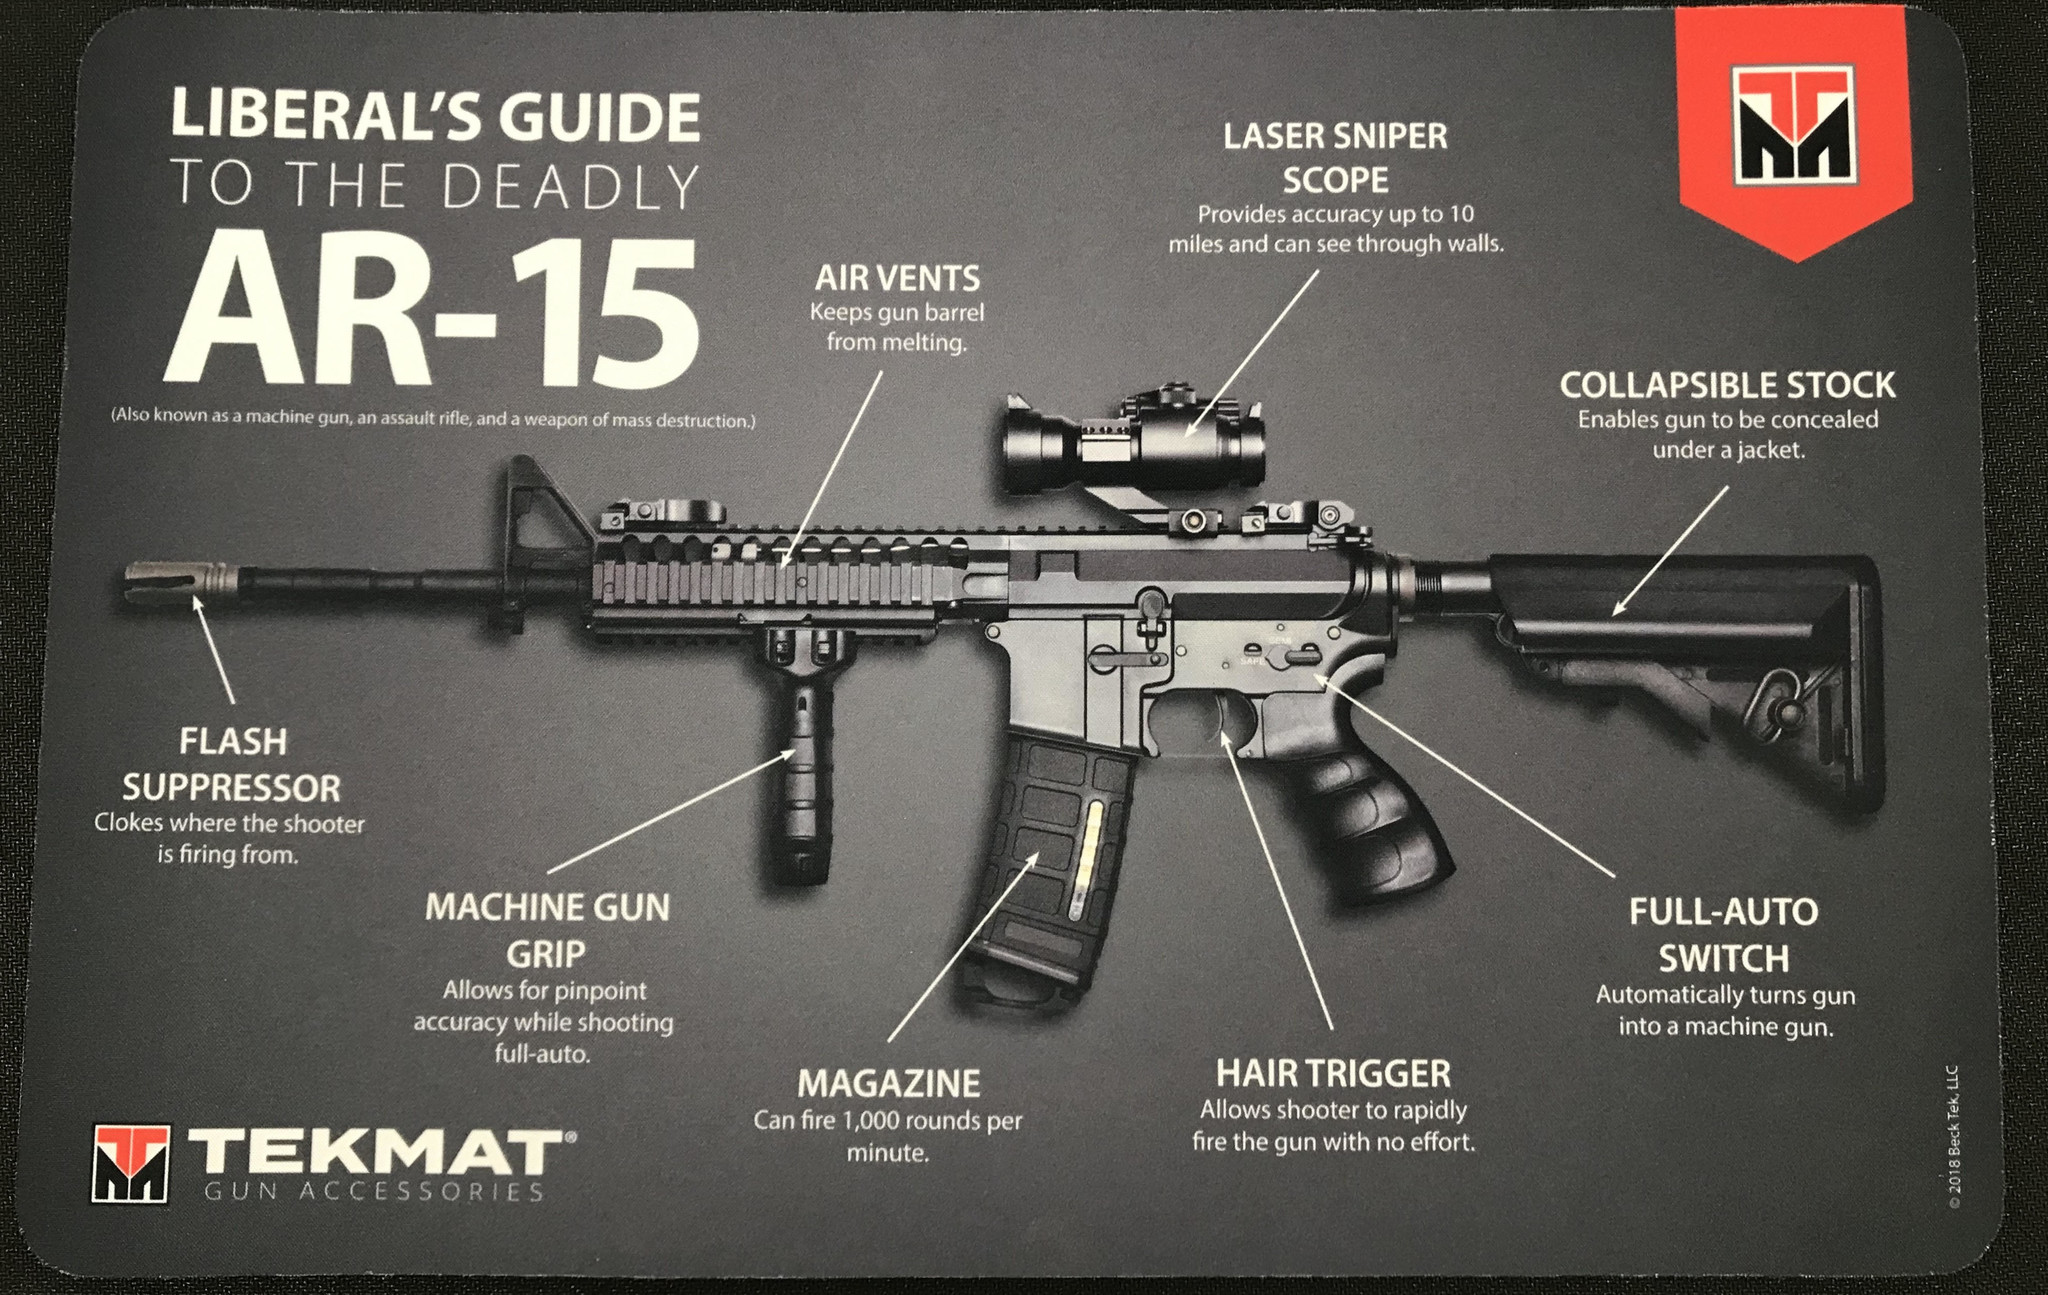 TekMat Firearms Cleaning Mat Liberal Guide diagram (11x17)